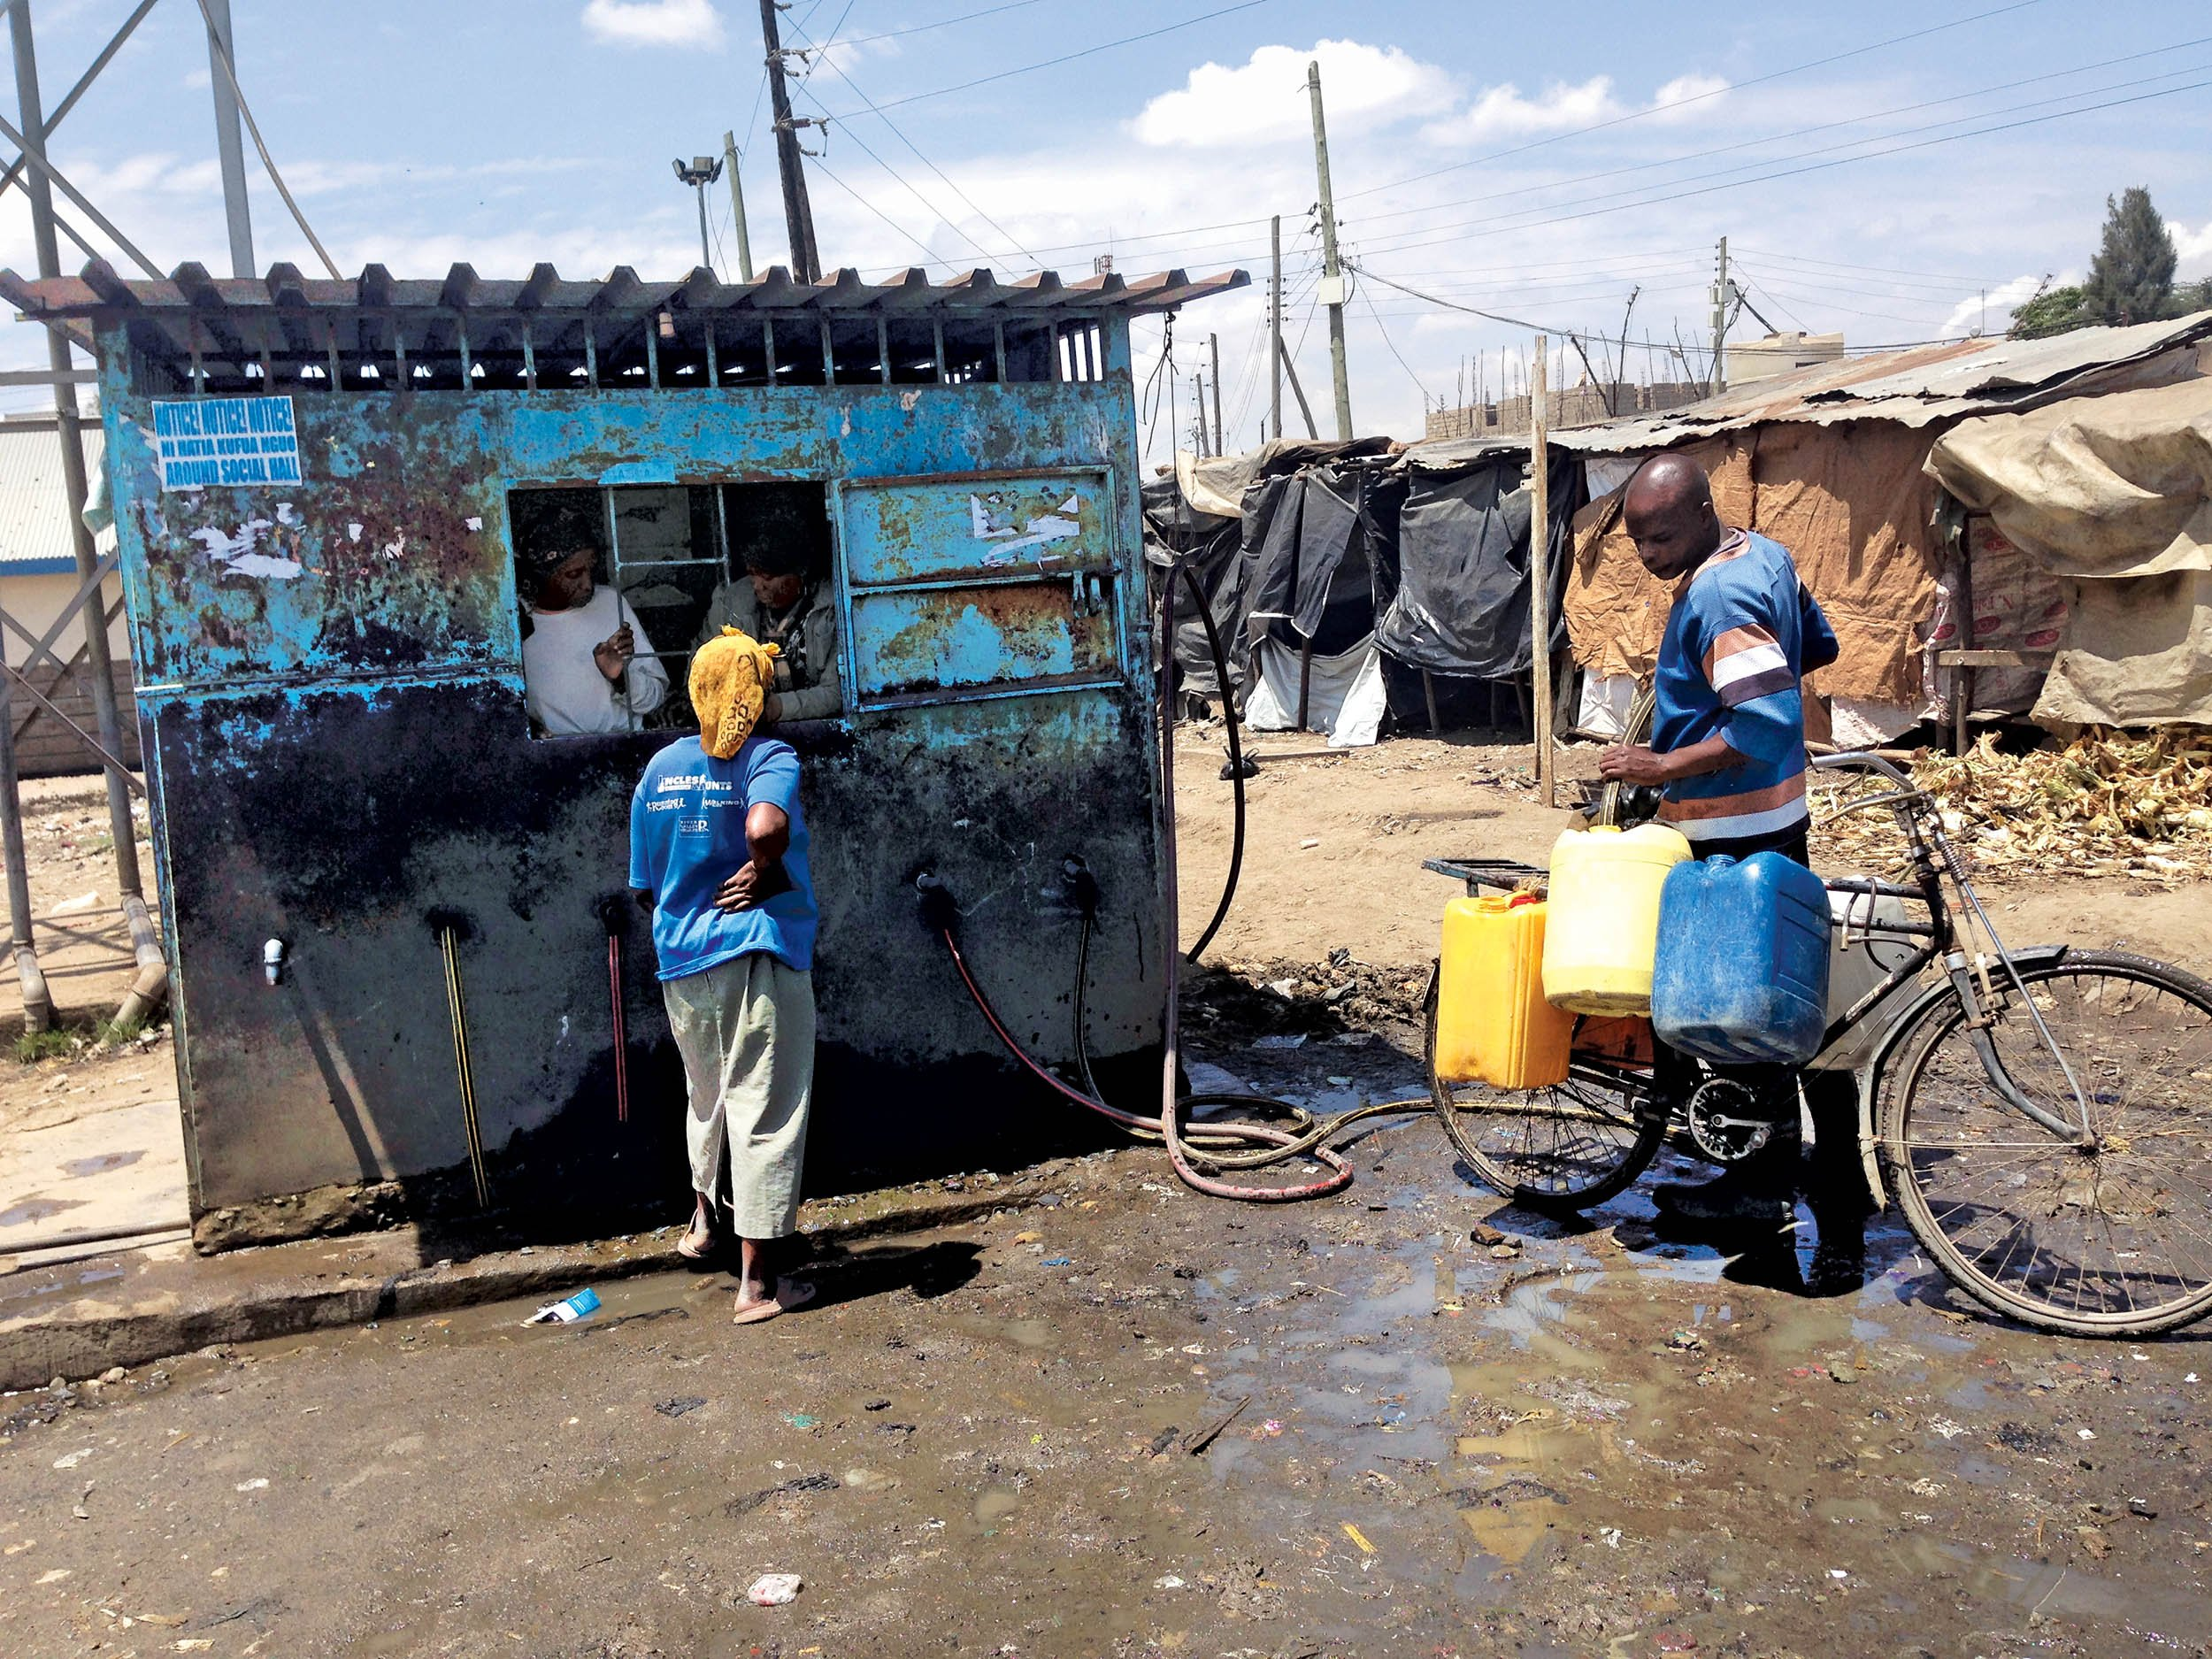 A Water Project Cleans Up Nairobi 39 S Slum